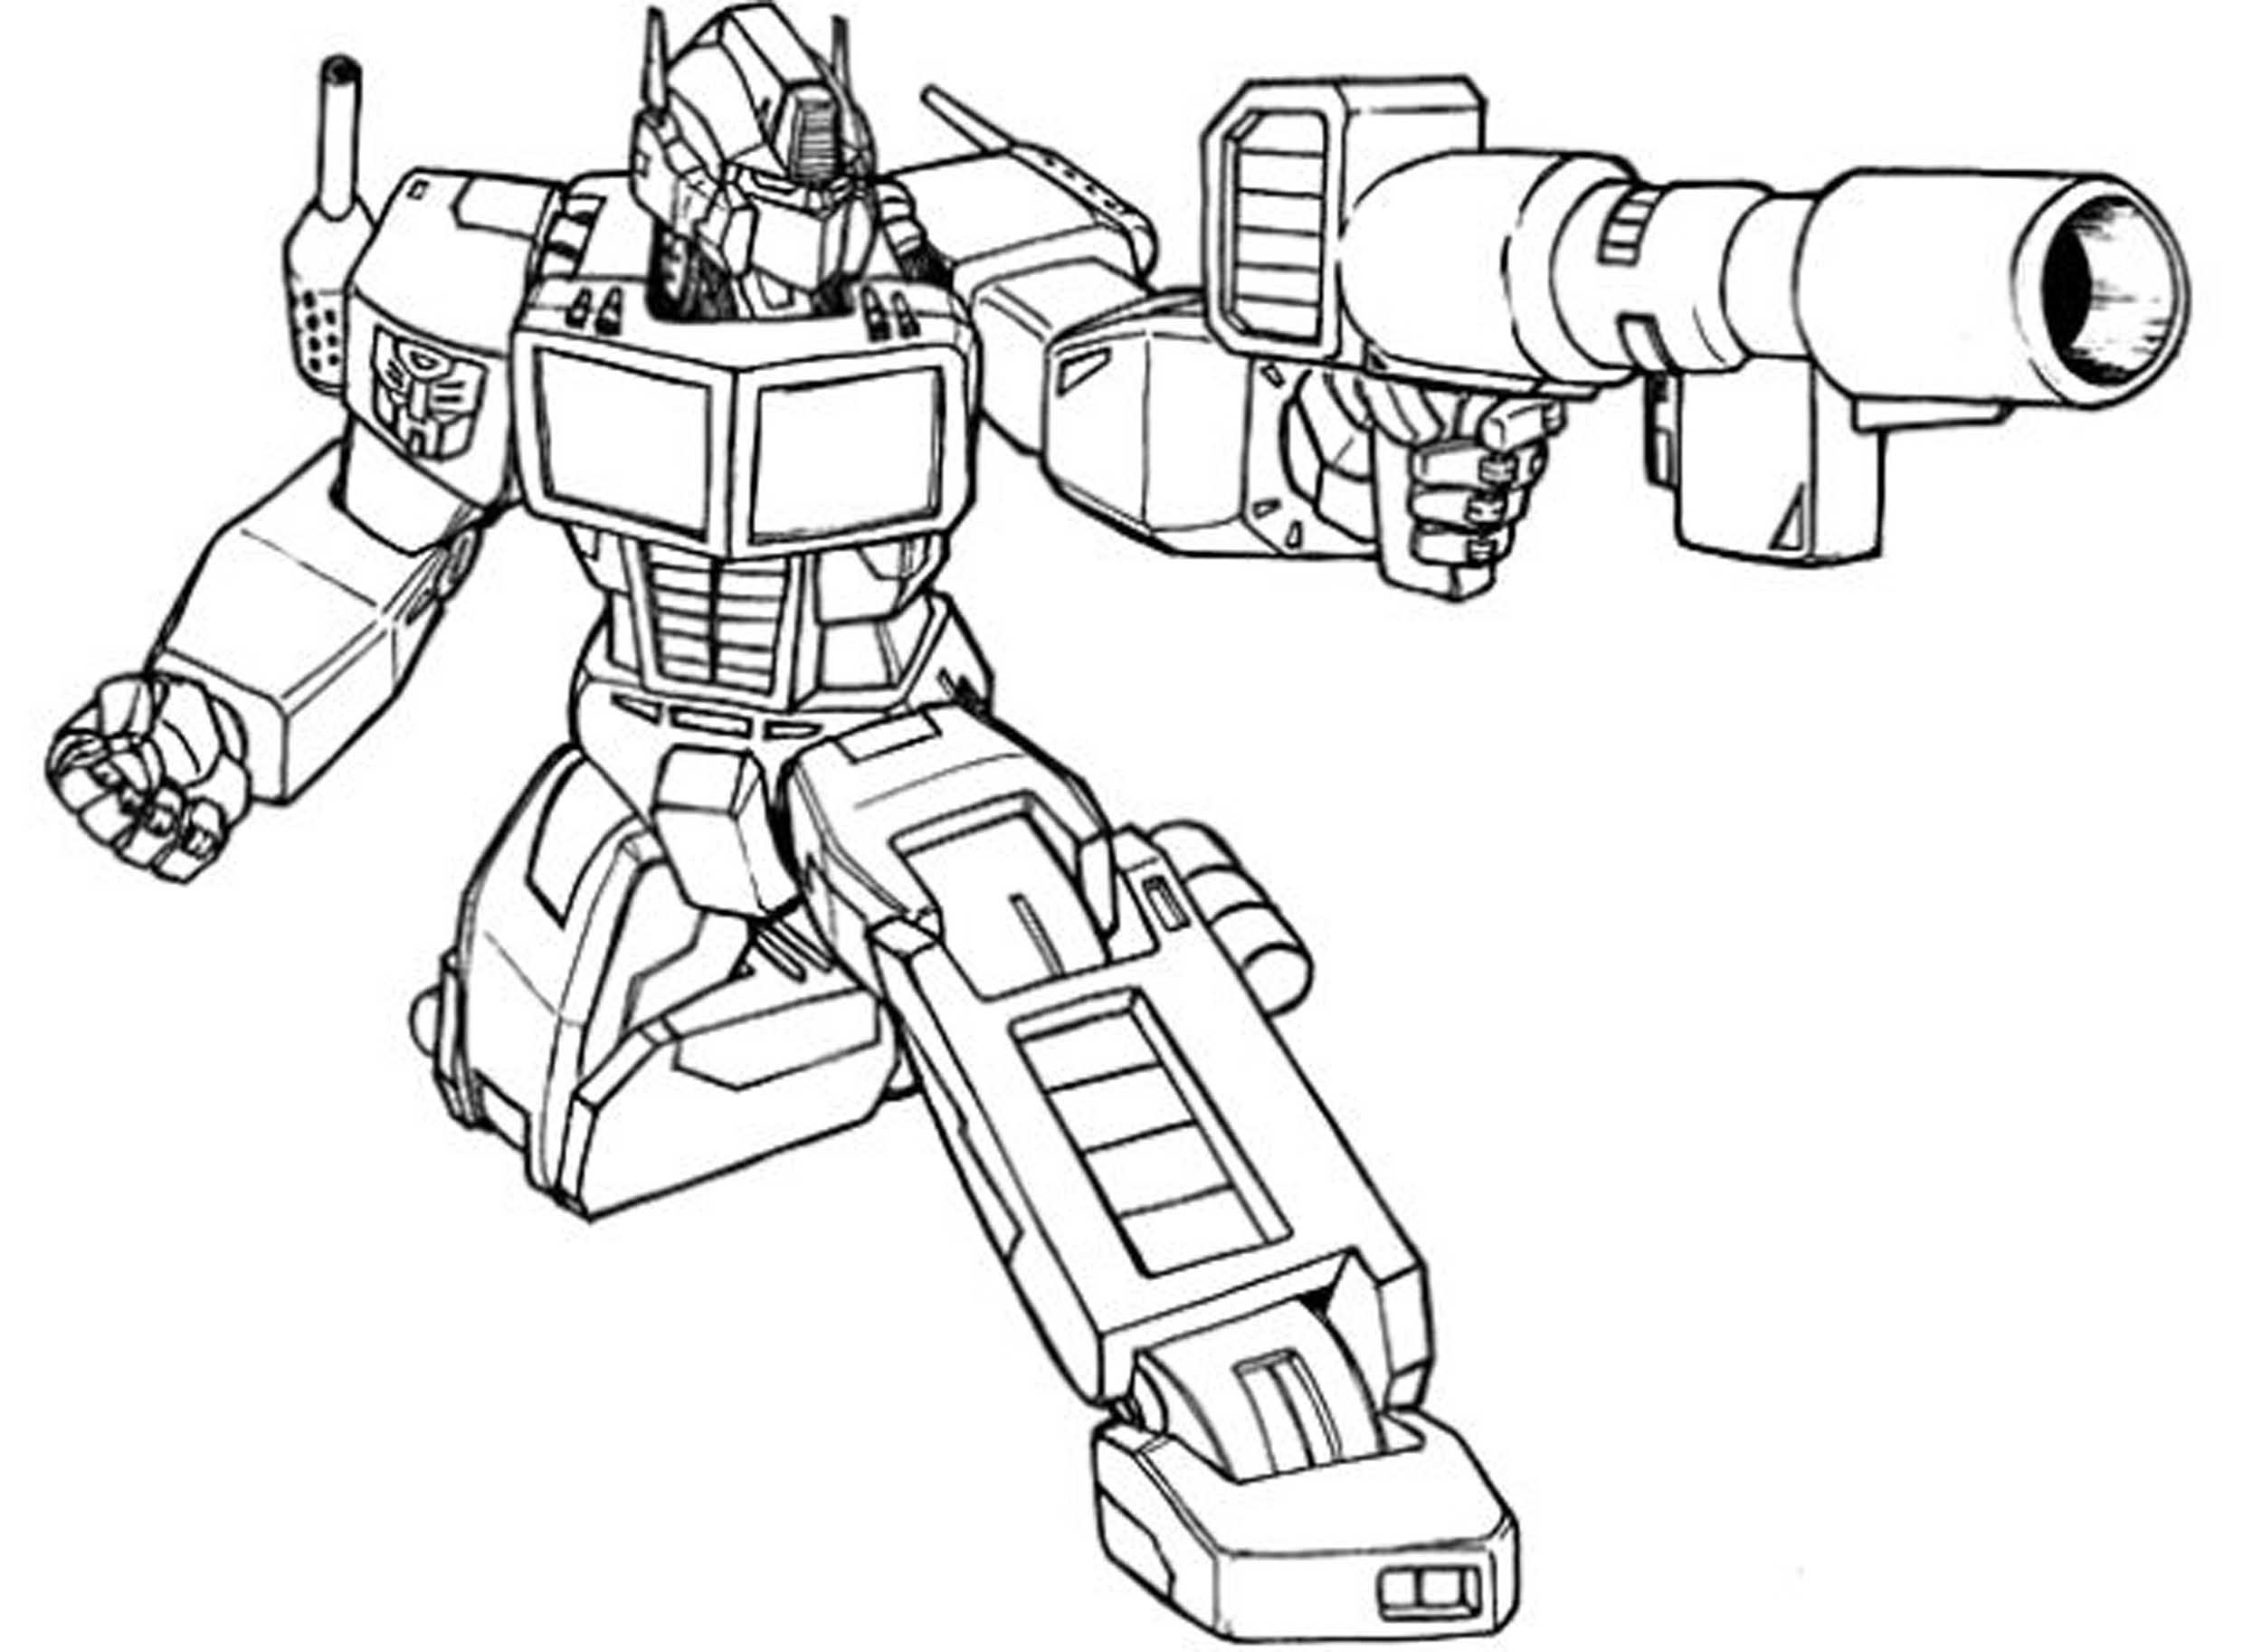 bumblebee transformer coloring page - beautiful bumblebee transformer coloring page 29 about remodel coloring pages for kids online with bumblebee transformer coloring page